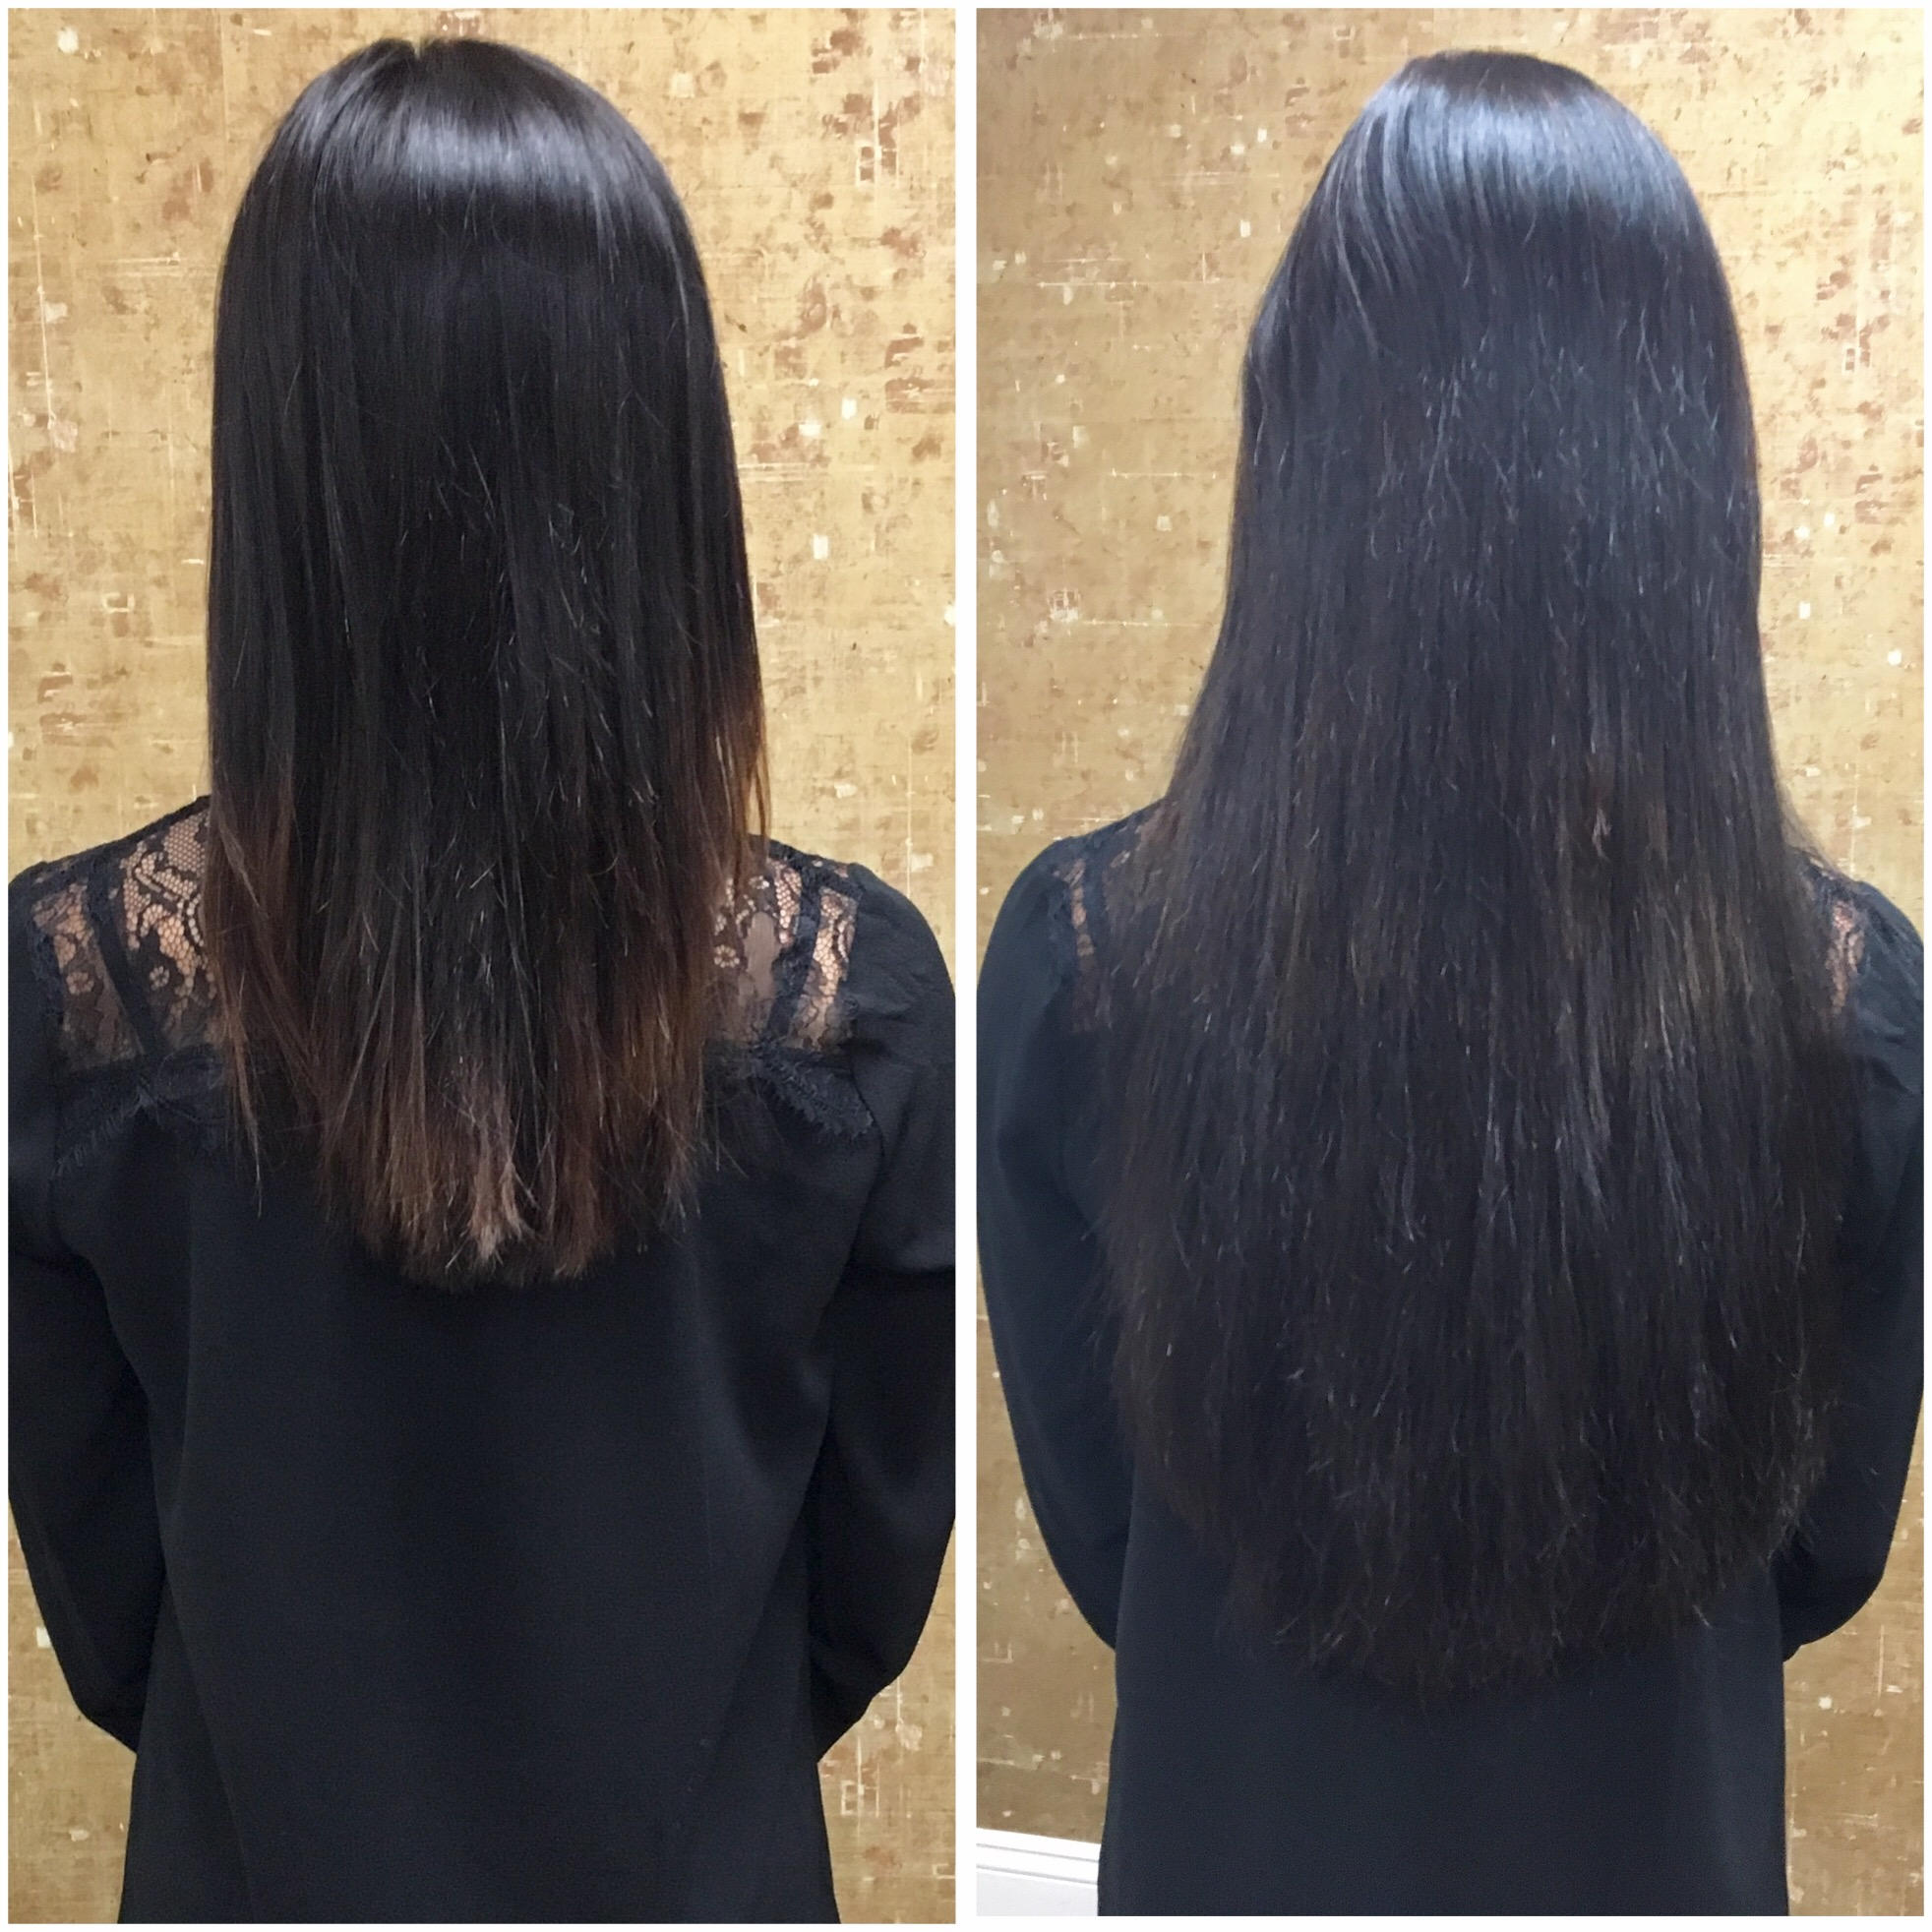 My experience with cold fusion hair extensions jersey girl talk before after cold fusion hair extensions by guci image solutioingenieria Images